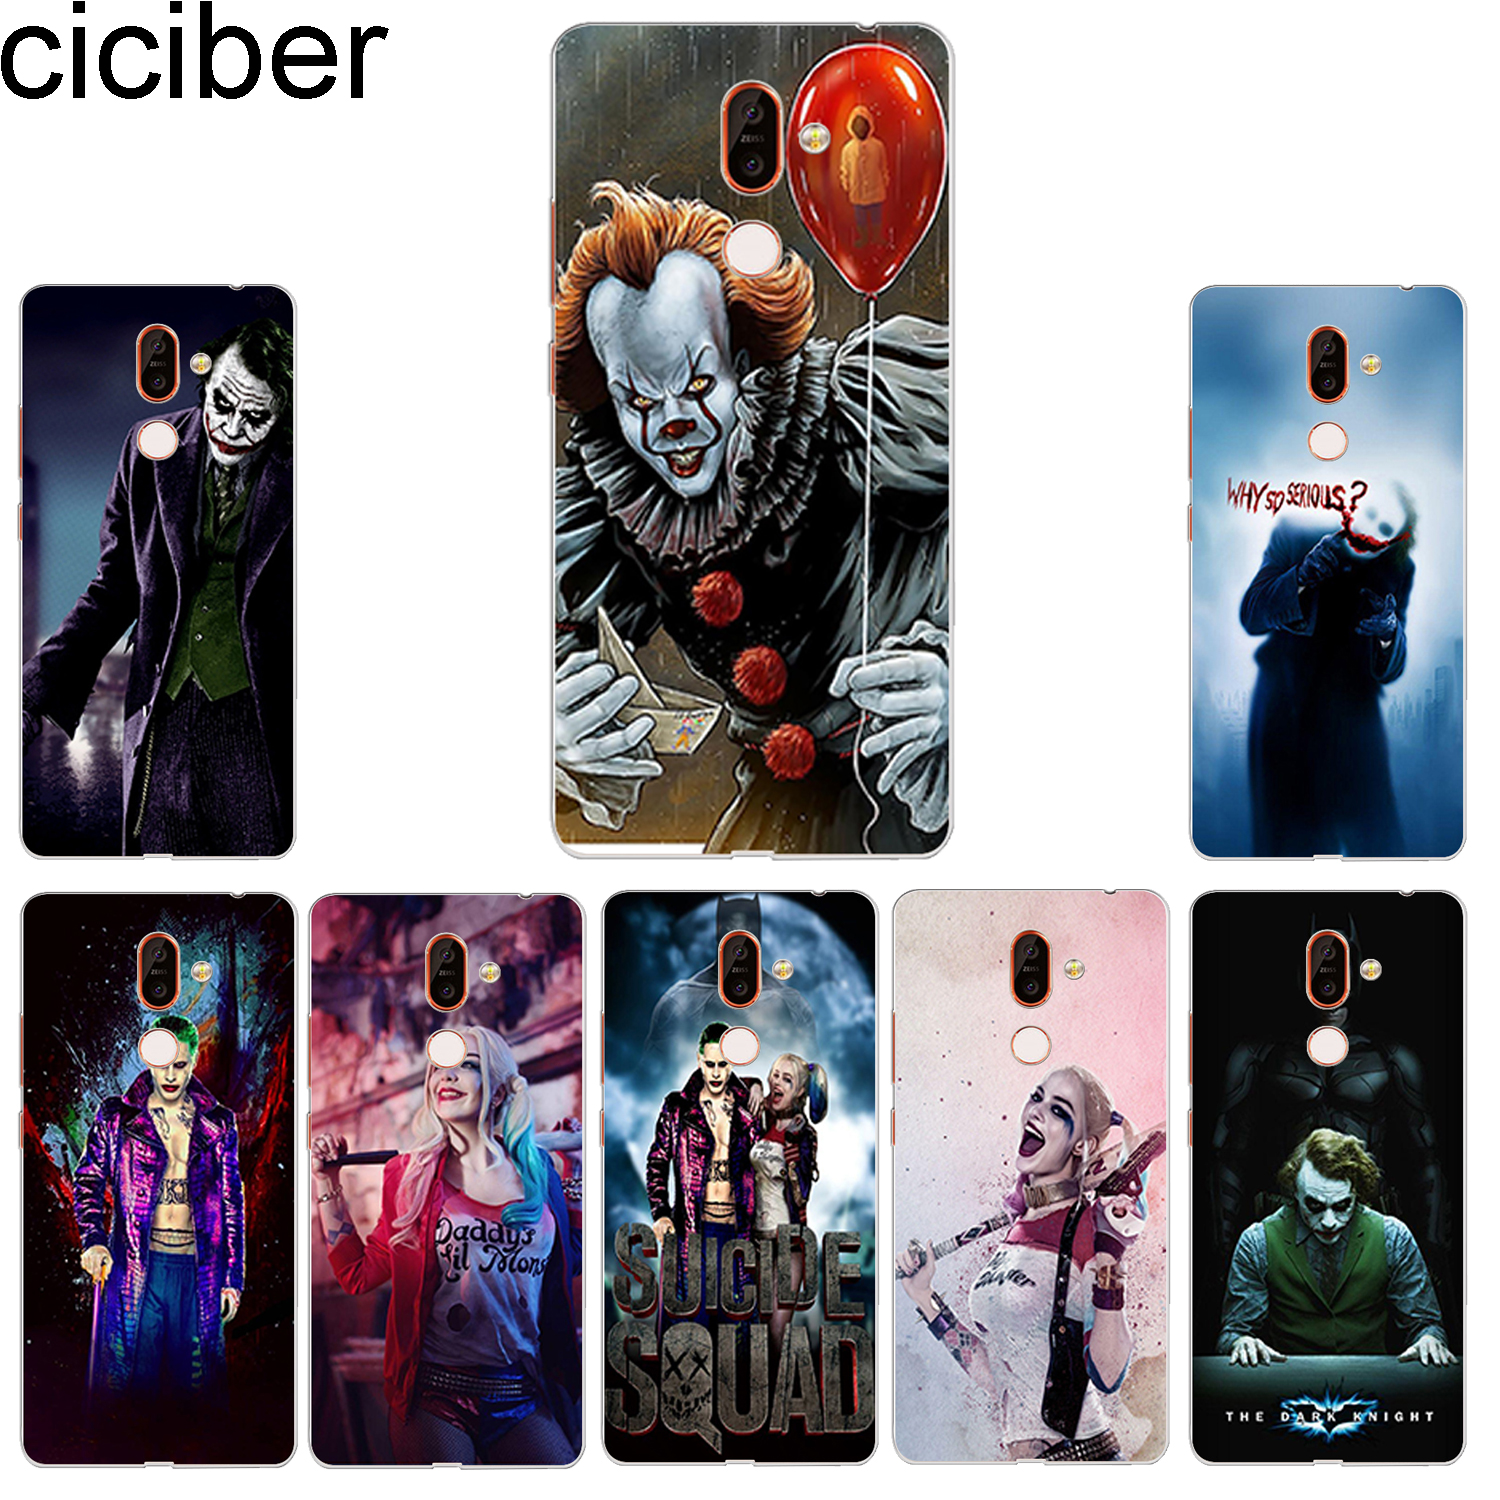 ciciber Phone Case for <font><b>Nokia</b></font> 9 PureView 1 2 3 5 6 7 8 Sirocco Soft TPU <font><b>Back</b></font> <font><b>Cover</b></font> for <font><b>Nokia</b></font> 2.1 3.1 5.1 6.1 <font><b>7.1</b></font> 8.1 Plus Joker image